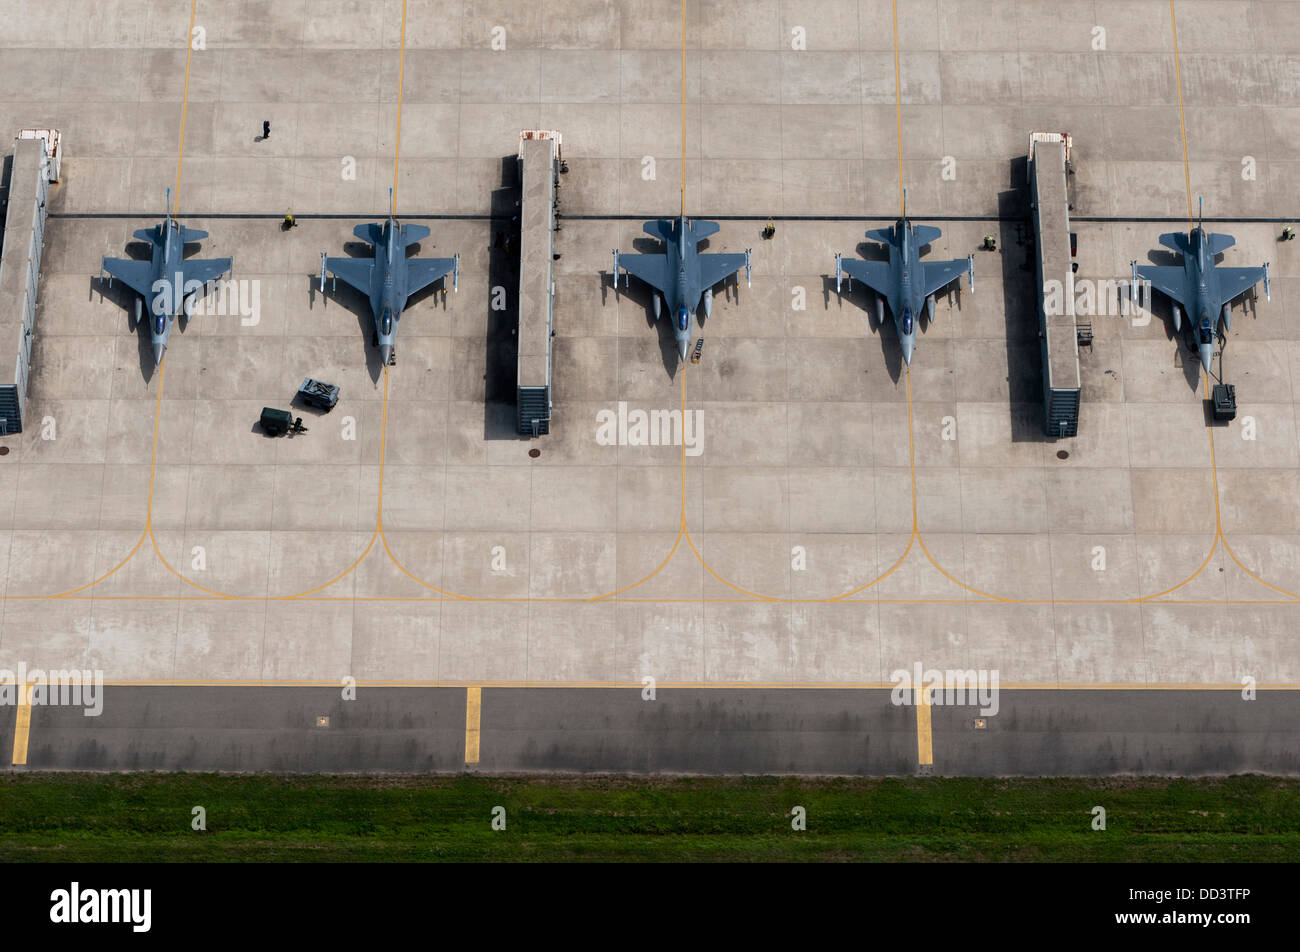 Aerial view of US Air Force F-16 Fighting Falcon aircraft parked at Kusan Air Base August 15, 2013 in Kusan, South - Stock Image